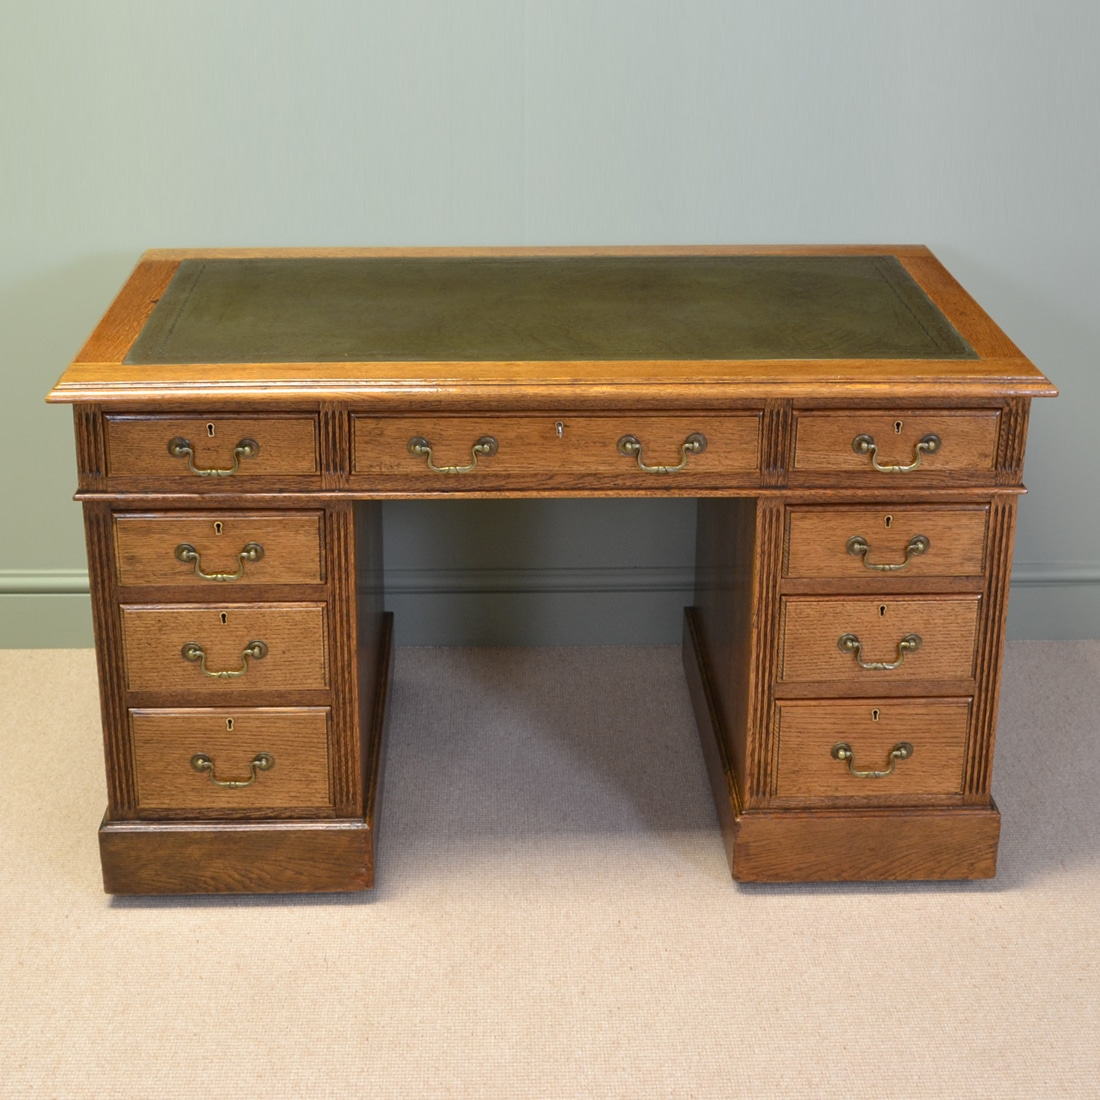 Impressive Edwardian Golden Oak Antique Pedestal Desk